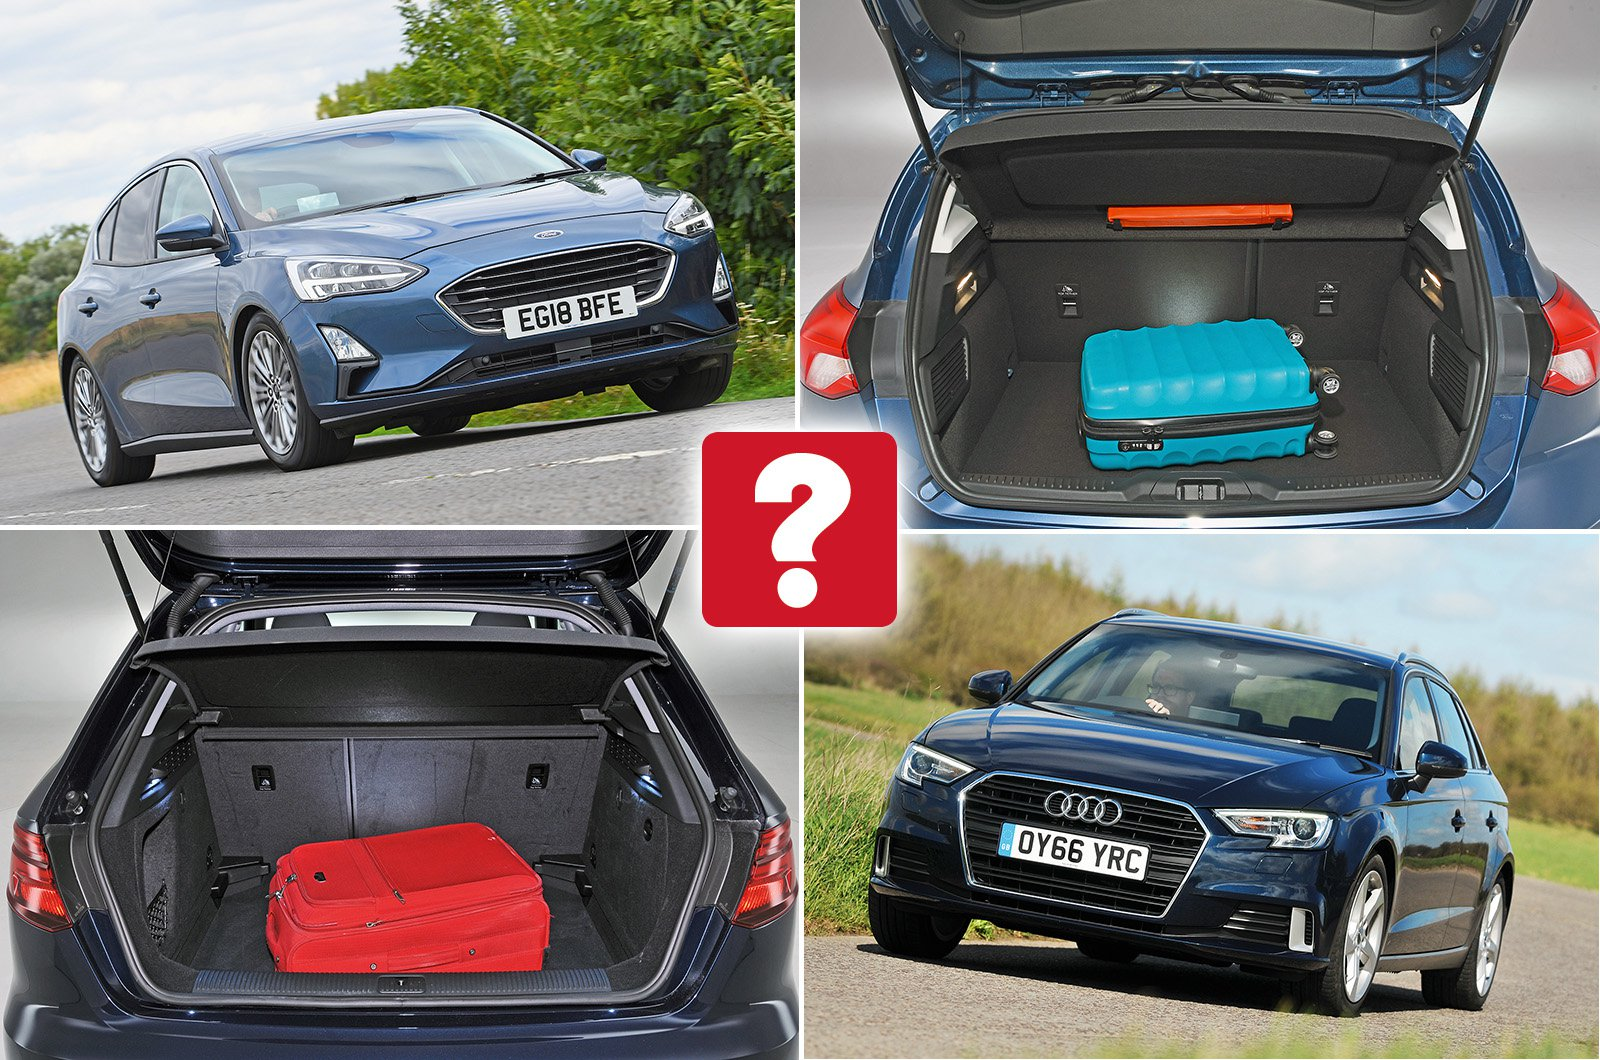 New Ford Focus vs used Audi A3